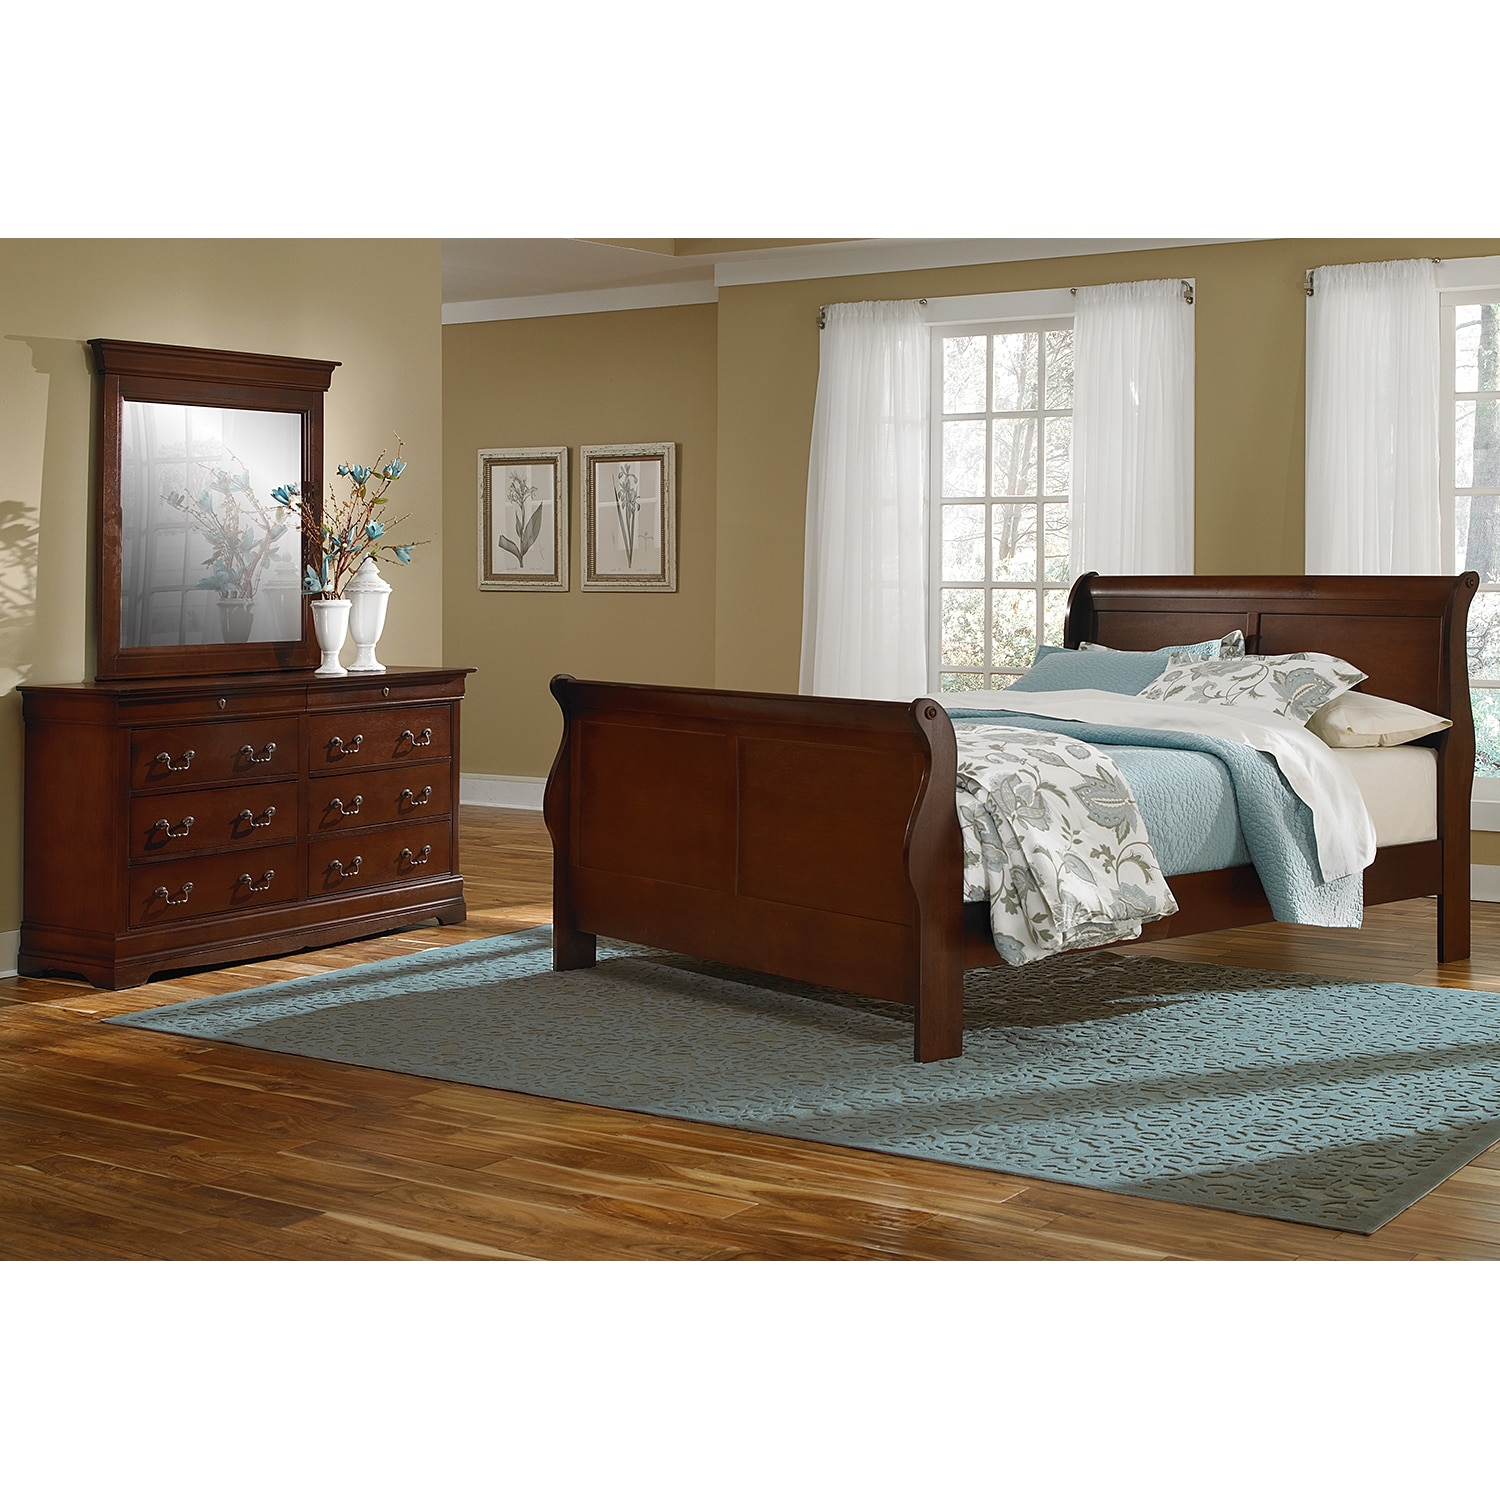 Neo classic youth 5 piece full bedroom set cherry for 5 piece bedroom set